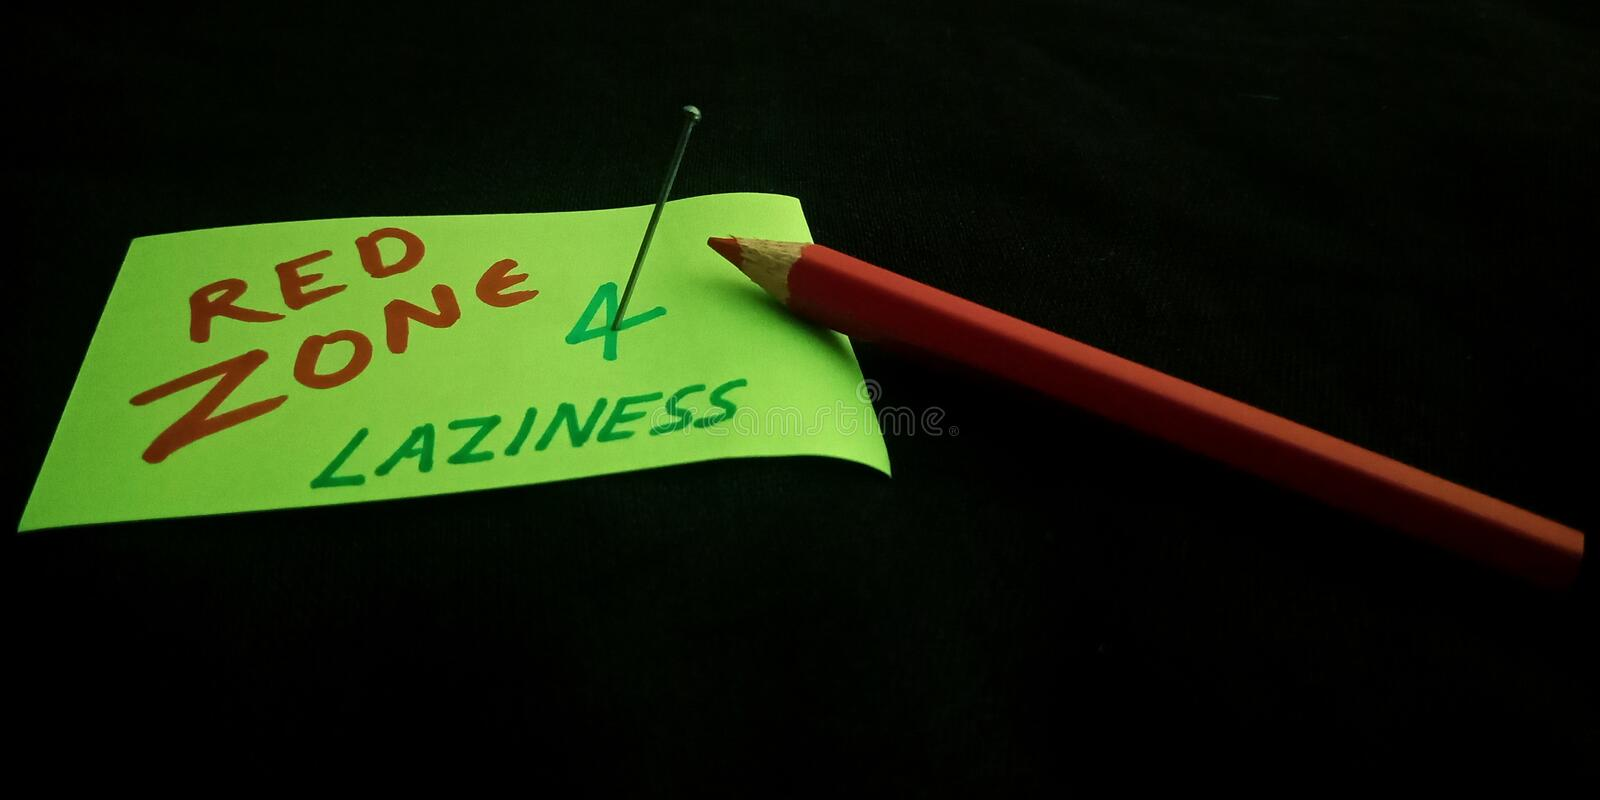 Red zone for laziness text written on black background with pencil. Lazy, people, not, allowed, concept, brain, sentence, reveal, time, displayed, pink, colour stock image